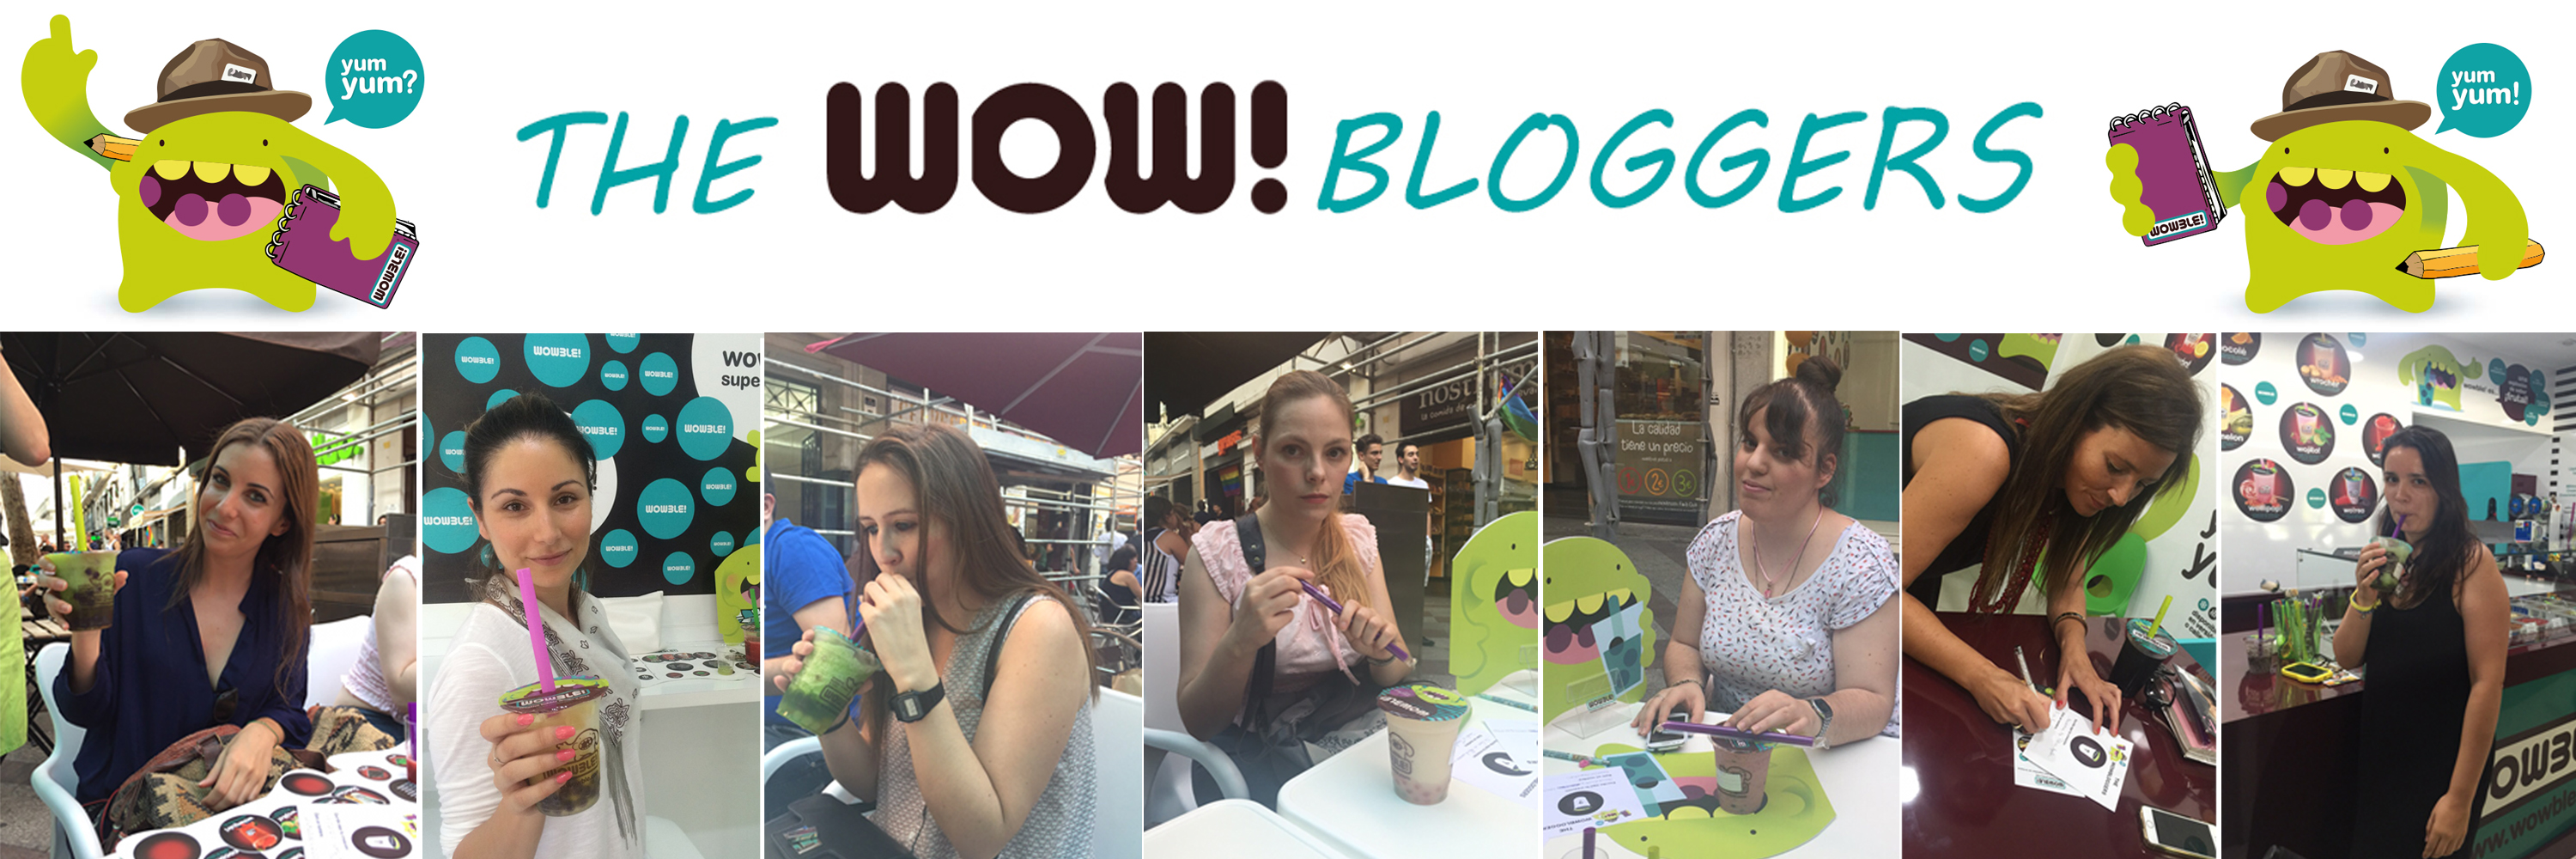 thewowbloggers